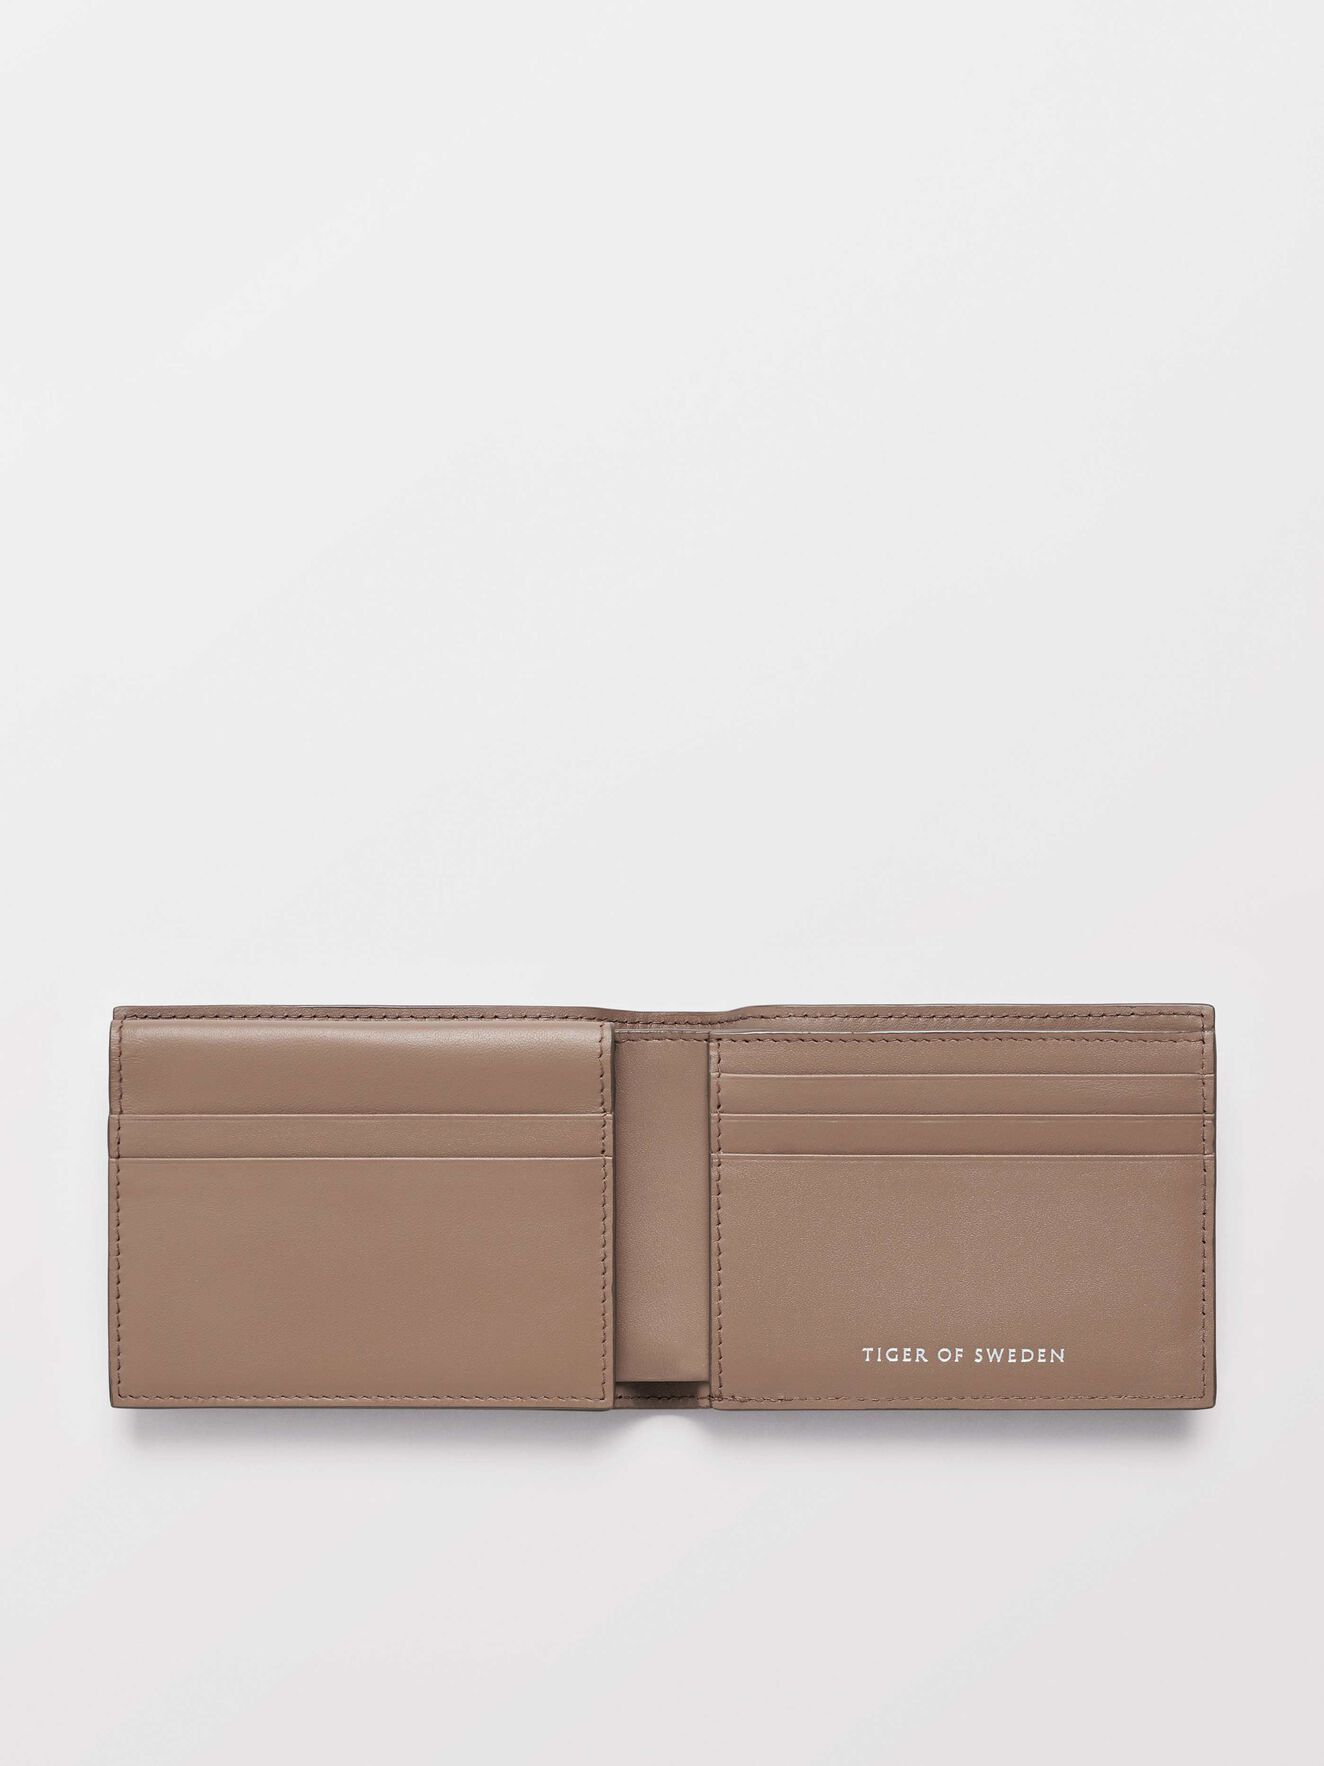 Agata 2 Wallet in Macchiato from Tiger of Sweden